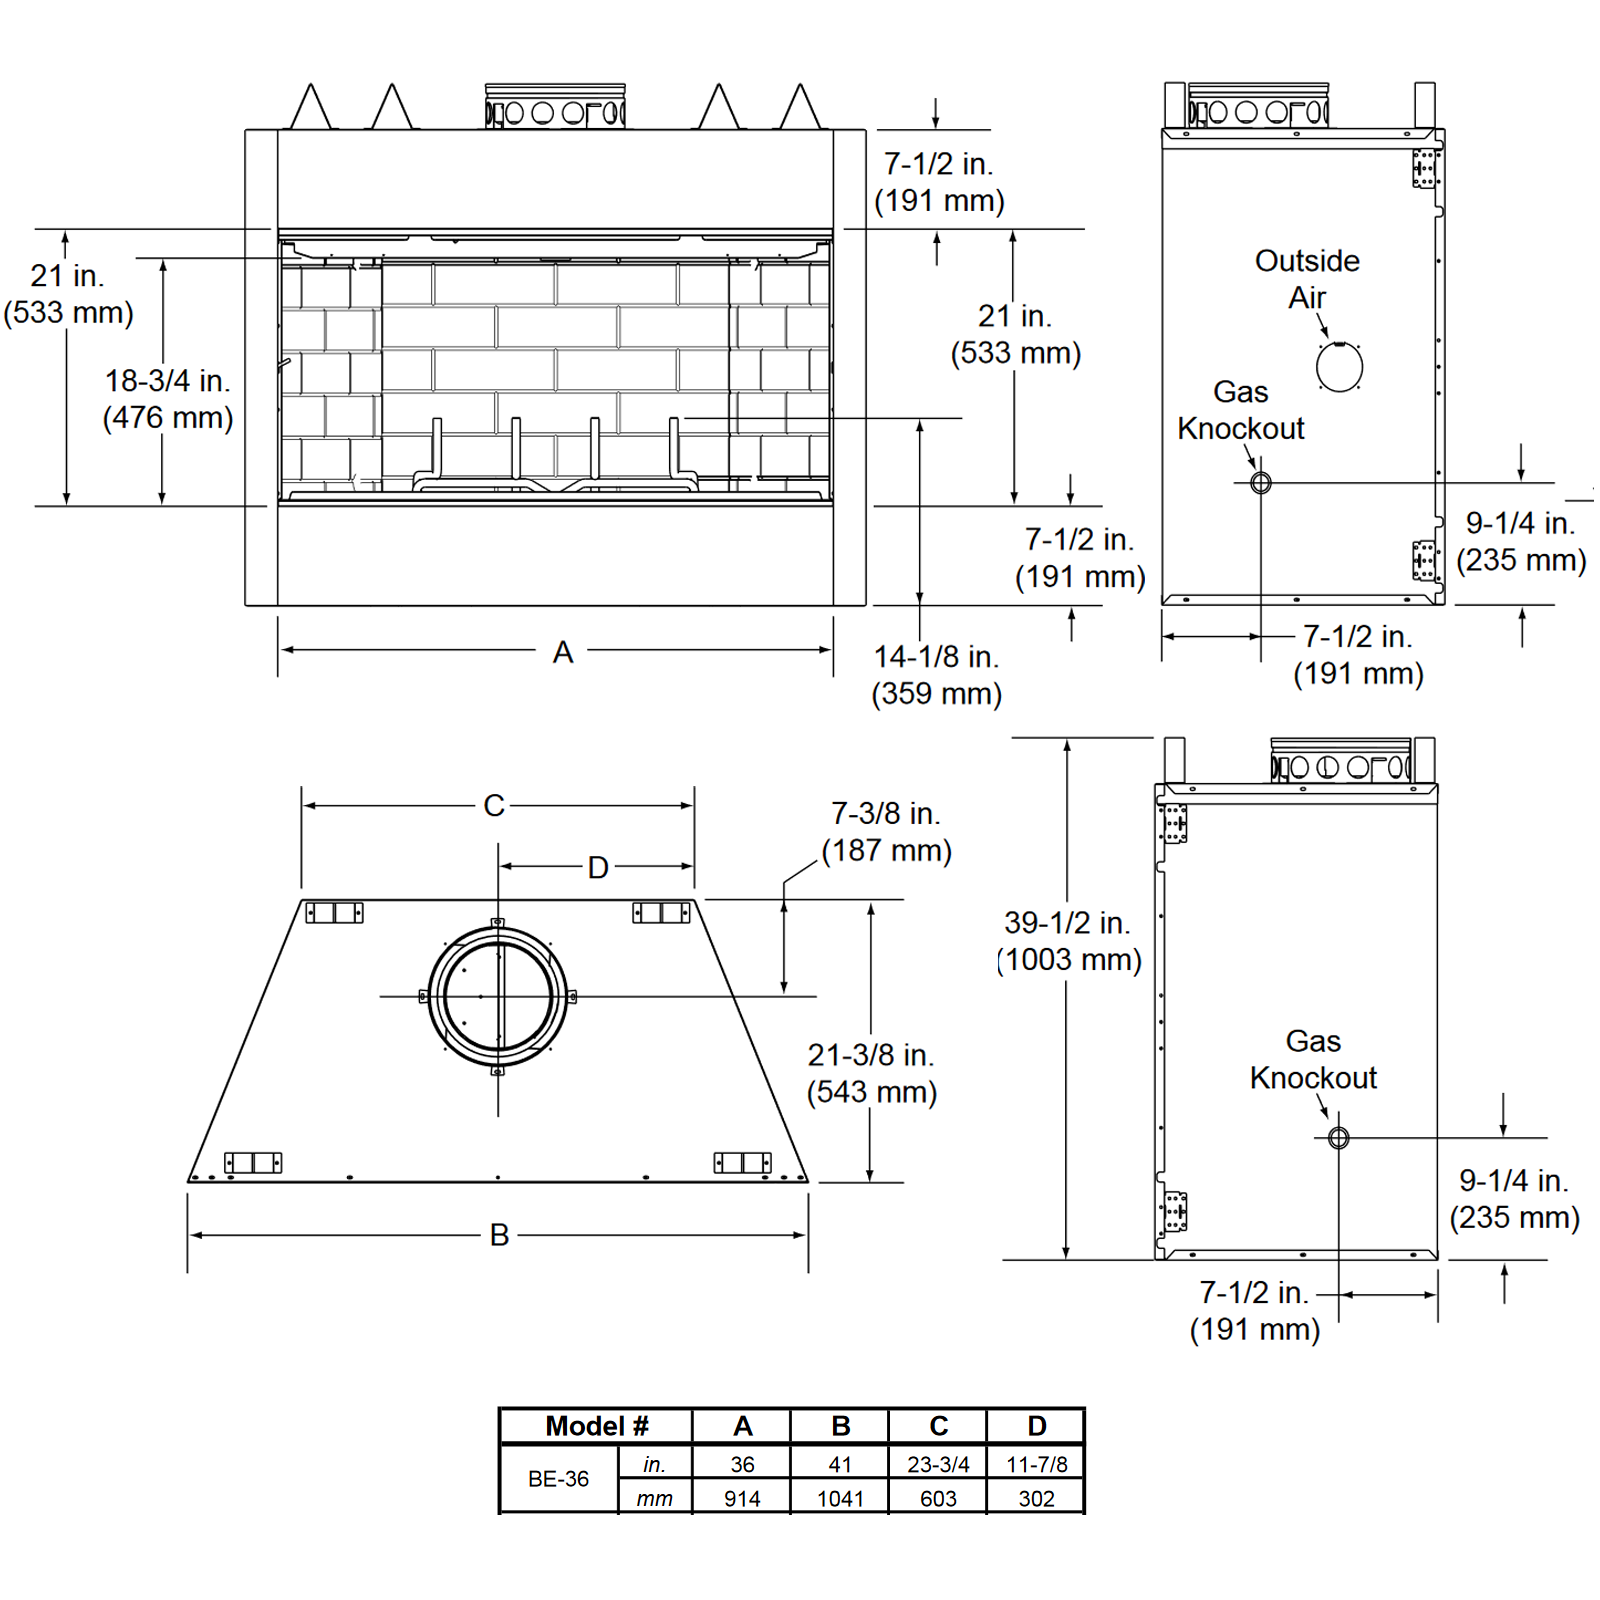 BE36 Technical Drawing 1